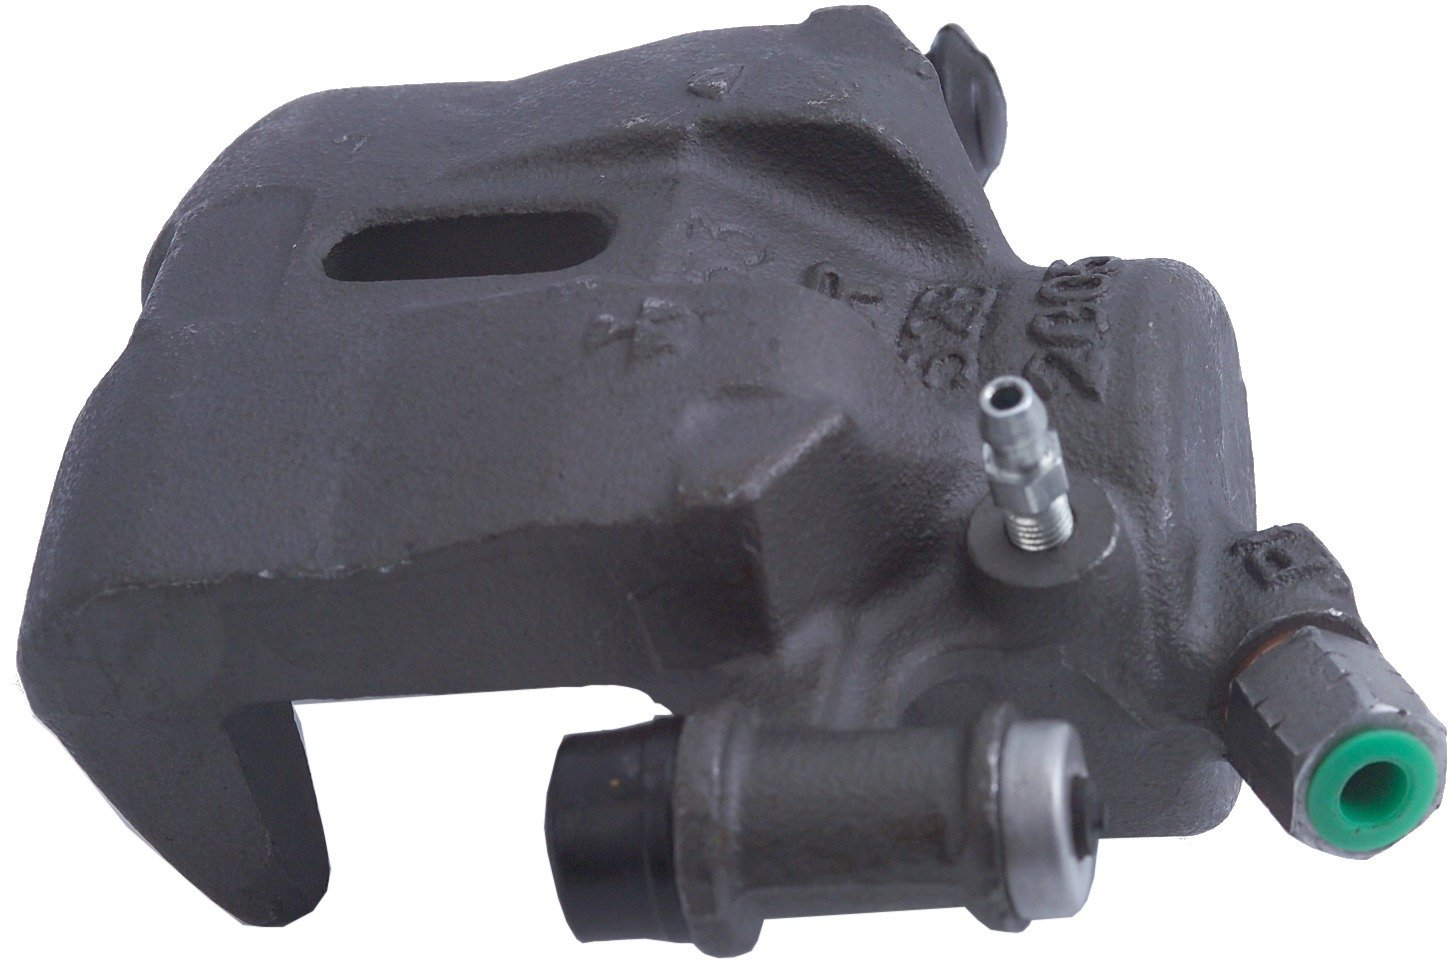 Brake Caliper Unloaded Cardone 19-570 Remanufactured Import Friction Ready